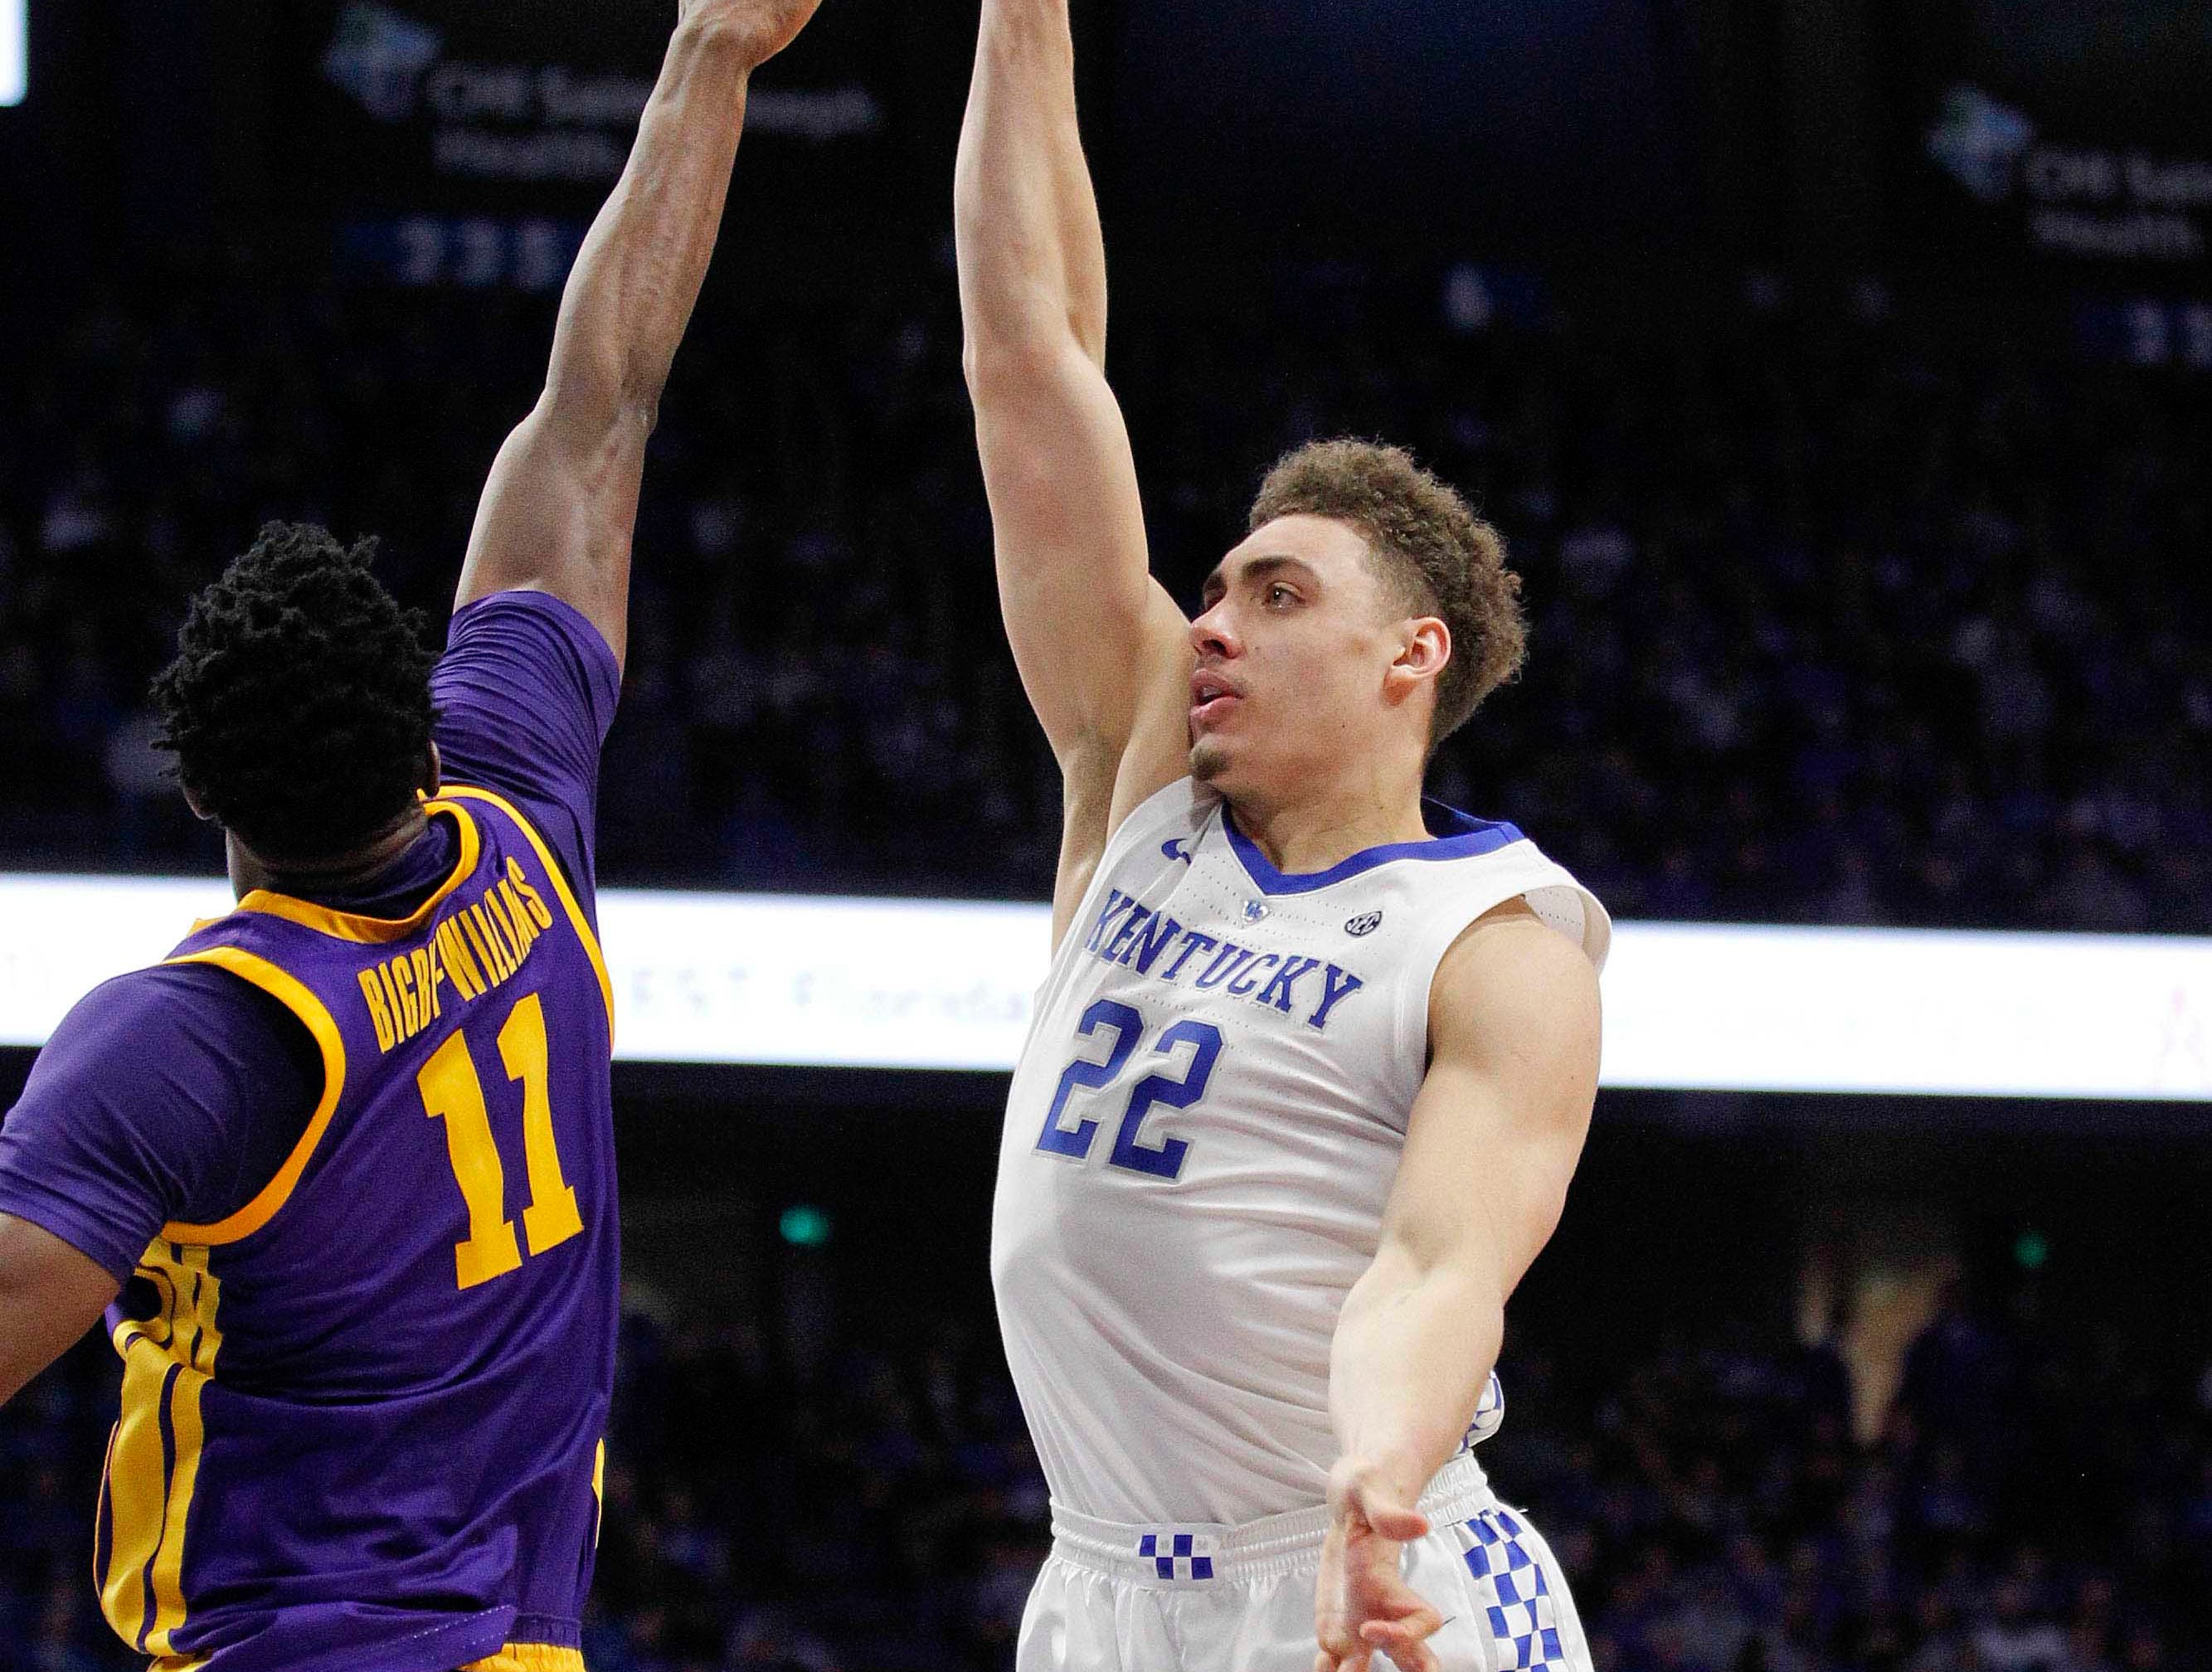 Feb 12, 2019; Lexington, KY, USA; Kentucky Wildcats forward Reid Travis (22) shoots the ball against LSU Tigers forward Kavell Bigby-Williams (11) in the first half at Rupp Arena. Mandatory Credit: Mark Zerof-USA TODAY Sports